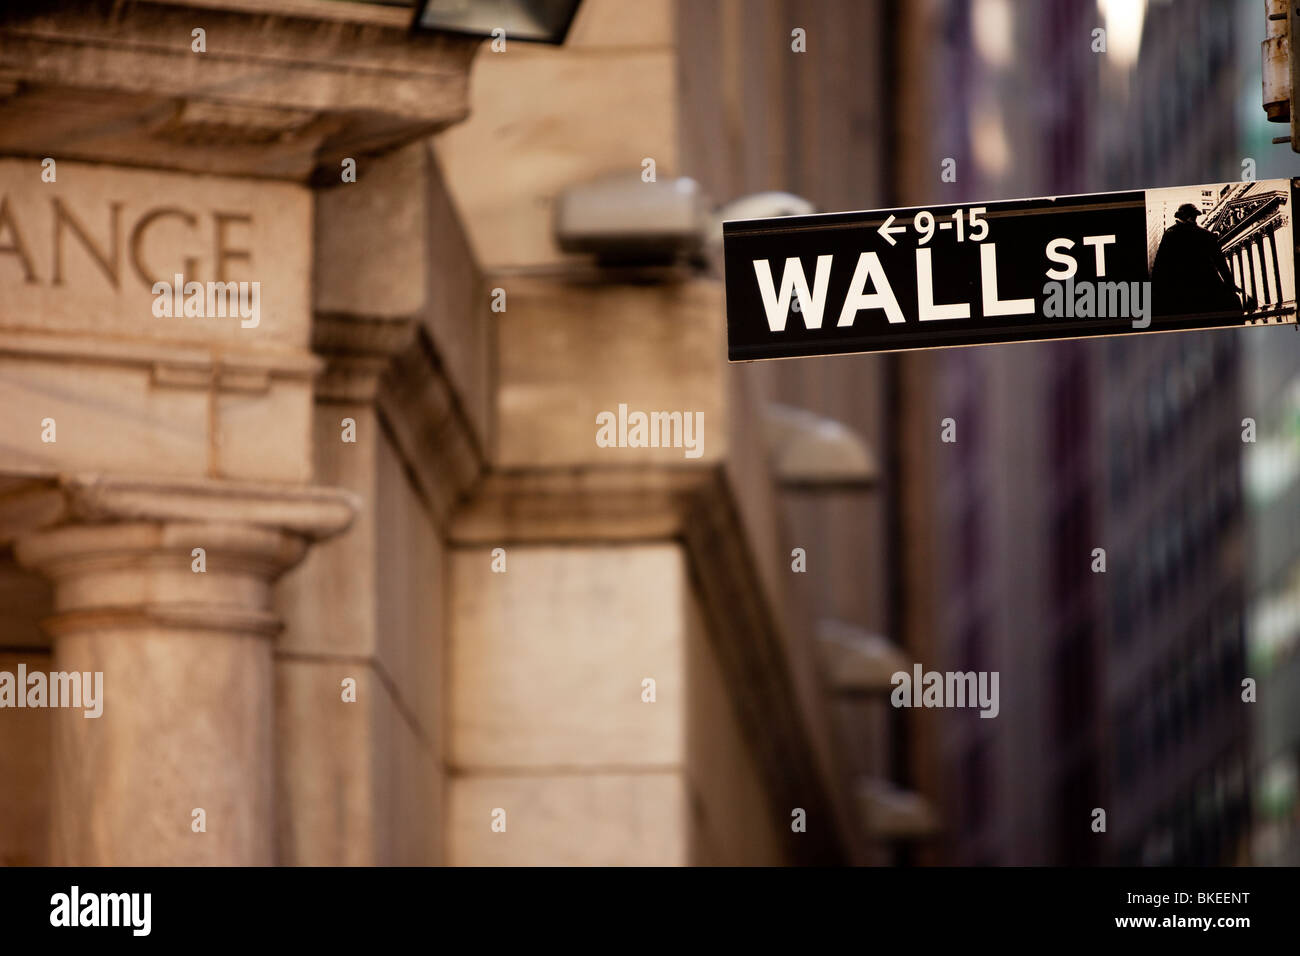 Wall Street sign at the back entrance to the New York Stock Exchange Building, New York City USA - Stock Image